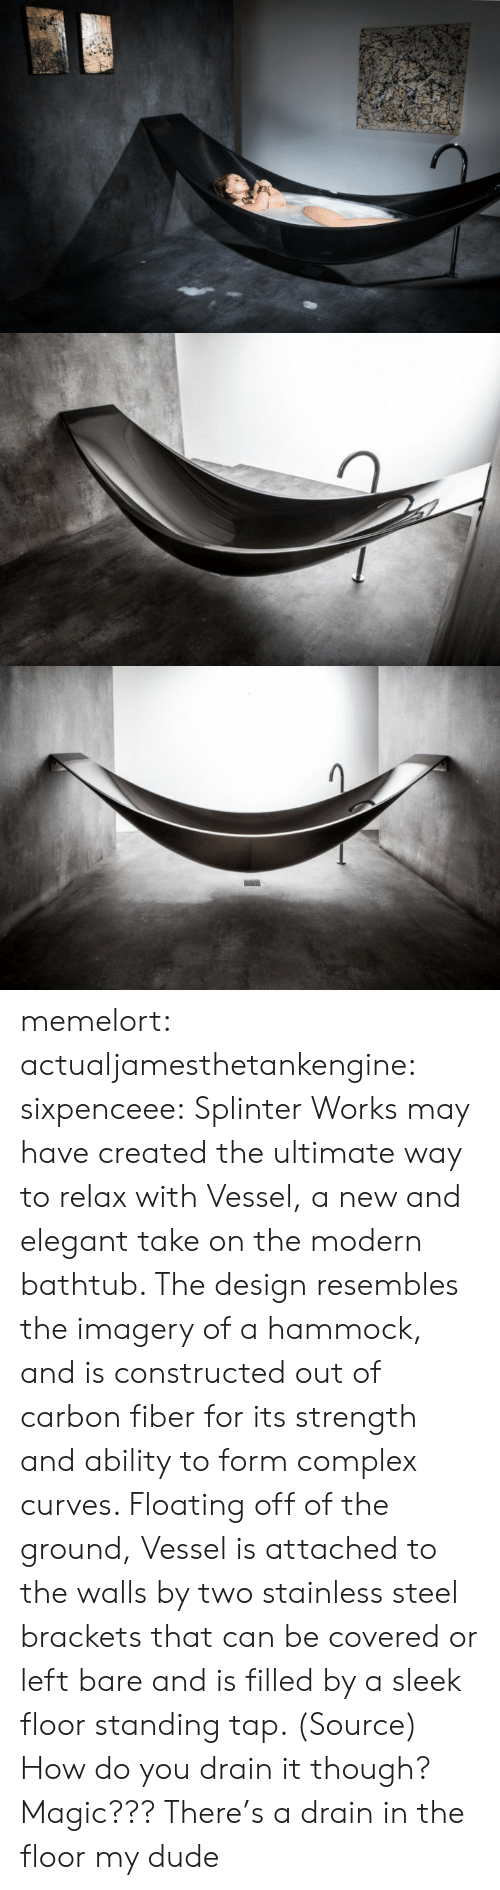 carbon fiber: memelort:  actualjamesthetankengine:  sixpenceee:  Splinter Works may have created the ultimate way to relax with Vessel, a new and elegant take on the modern bathtub. The design resembles the imagery of a hammock, and is constructed out of carbon fiber for its strength and ability to form complex curves. Floating off of the ground, Vessel is attached to the walls by two stainless steel brackets that can be covered or left bare and is filled by a sleek floor standing tap. (Source)  How do you drain it though? Magic???  There's a drain in the floor my dude